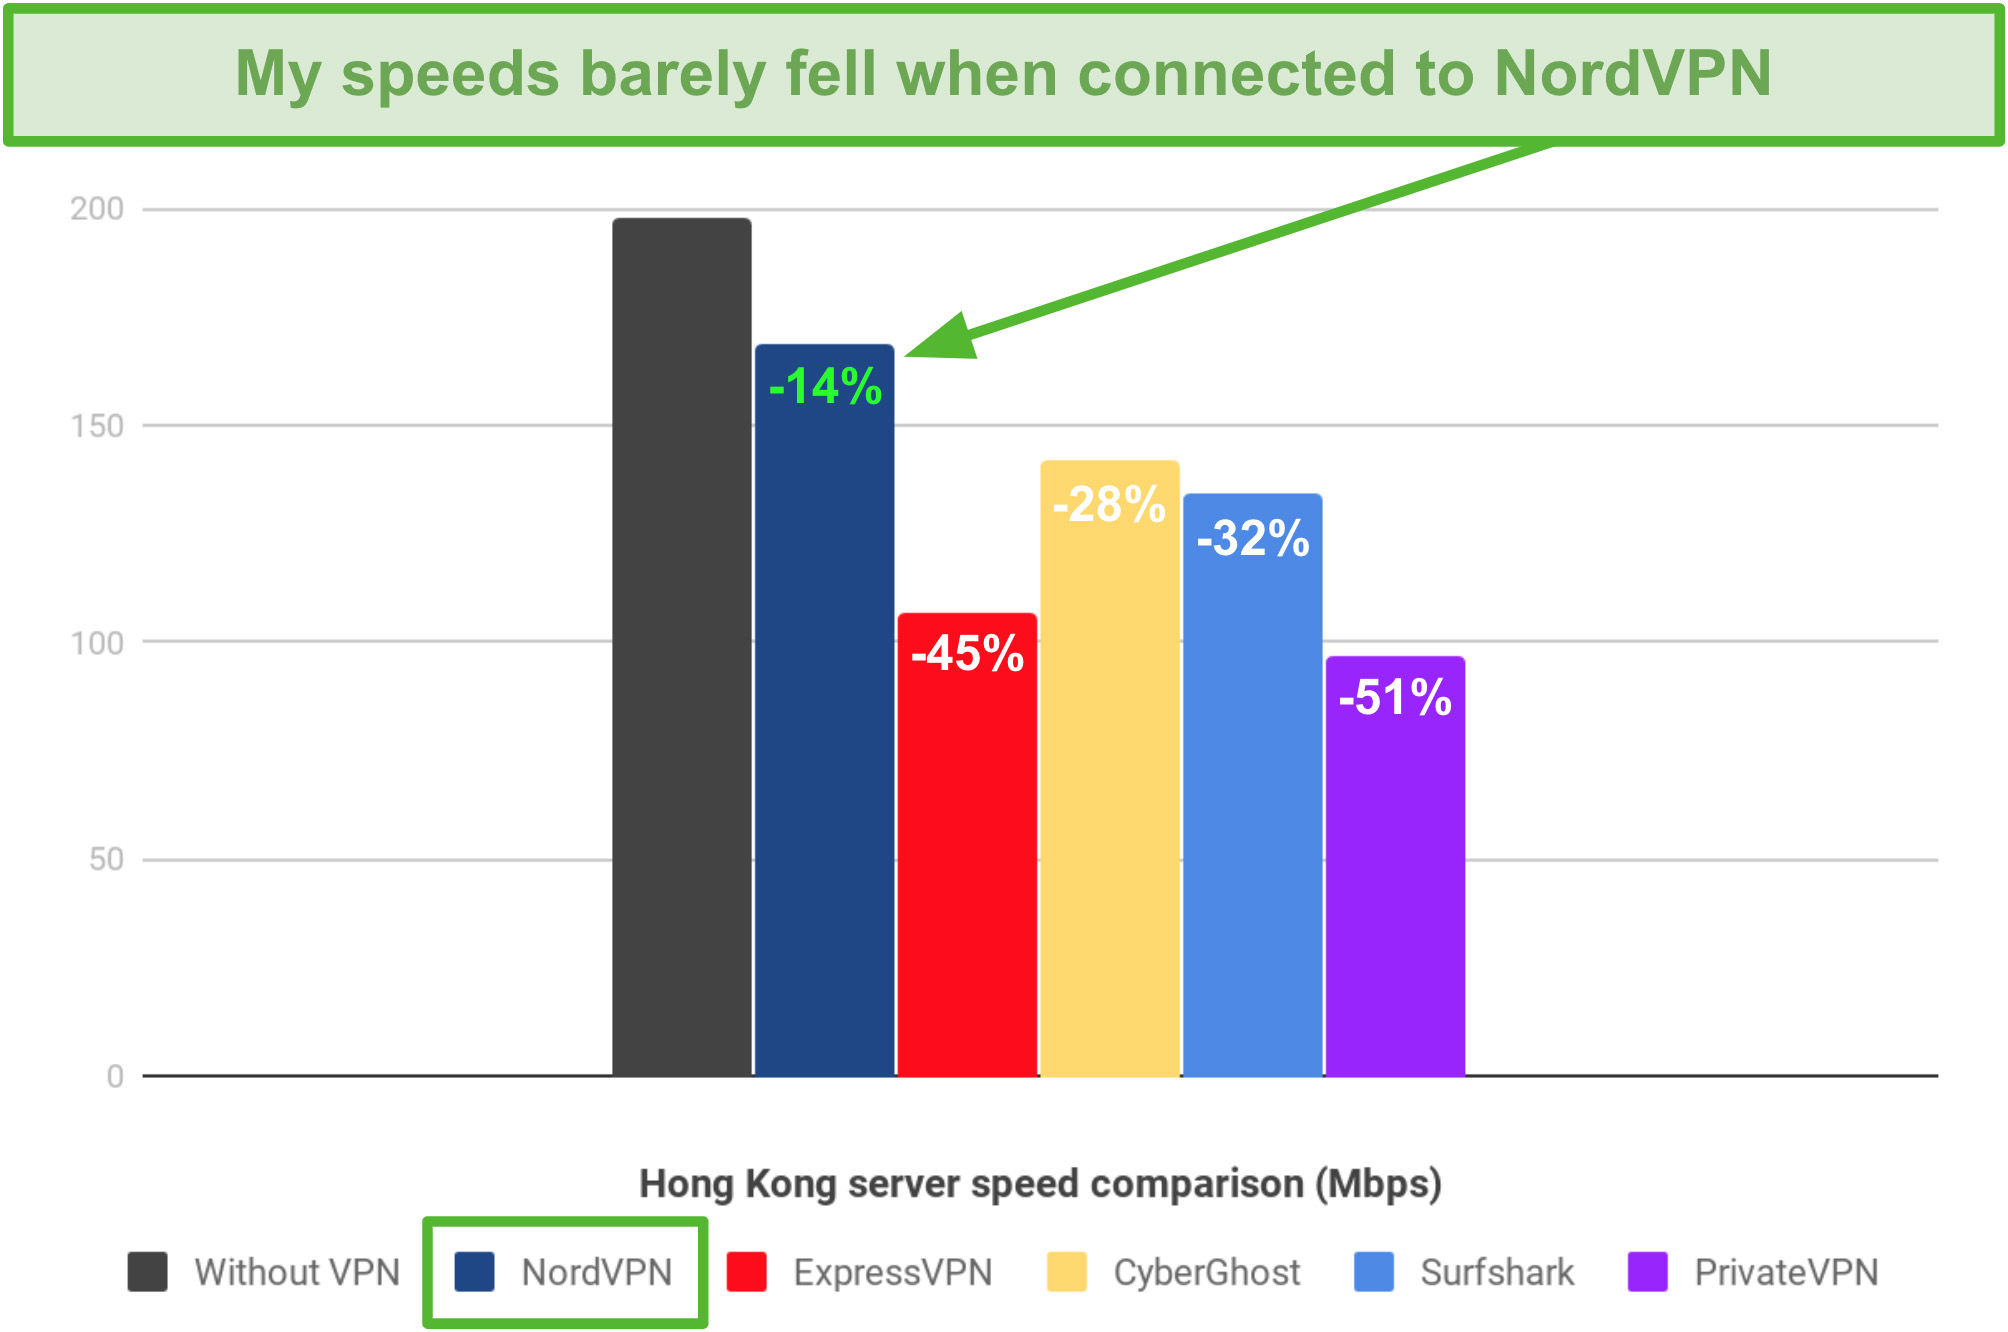 A bar chart showing the speed differences between NordVPN, ExpressVPN, CyberGhost, Surfshark, and PrivateVPN when connected to their Hong Kong server location.